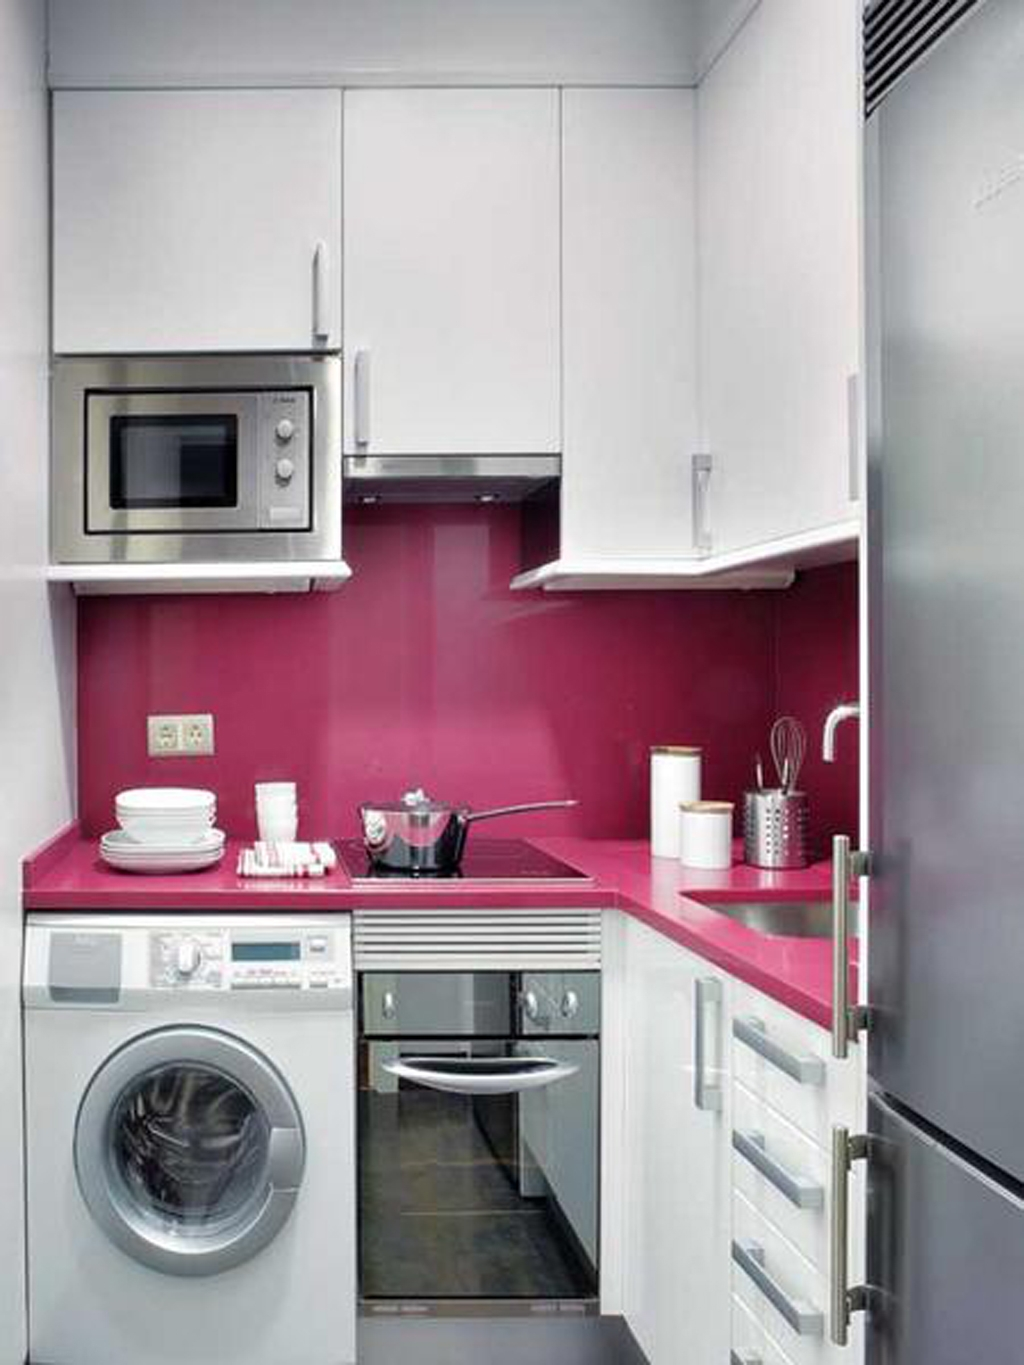 Small Apartment Kitchen Cabinet Design